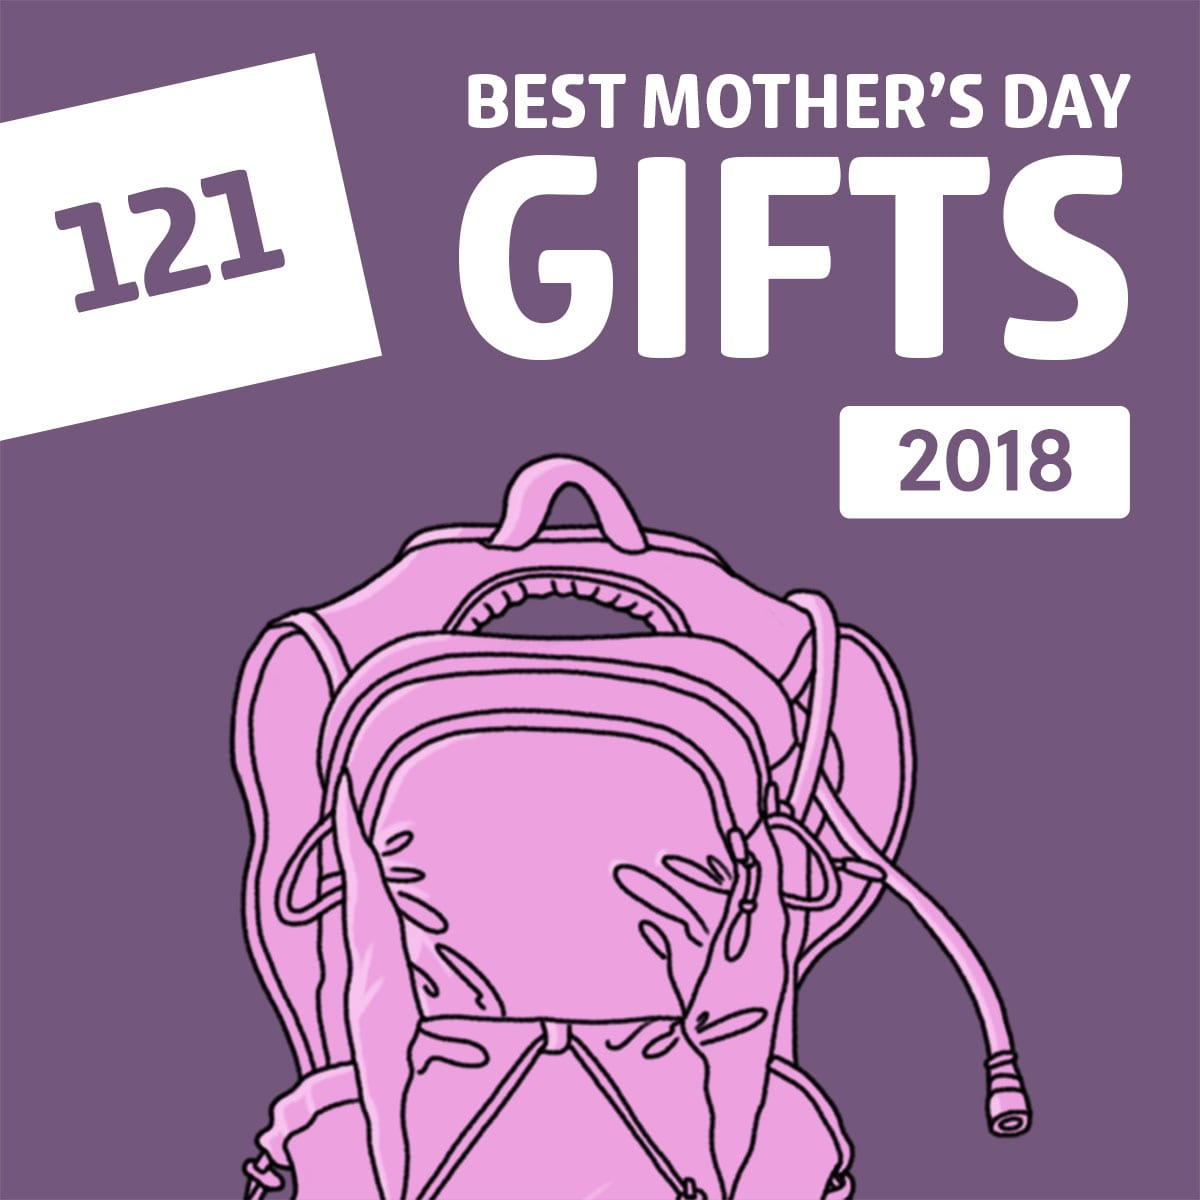 2018 Mother's Day Gift Ideas   275+ Mother's Day Gifts That Don't Suck